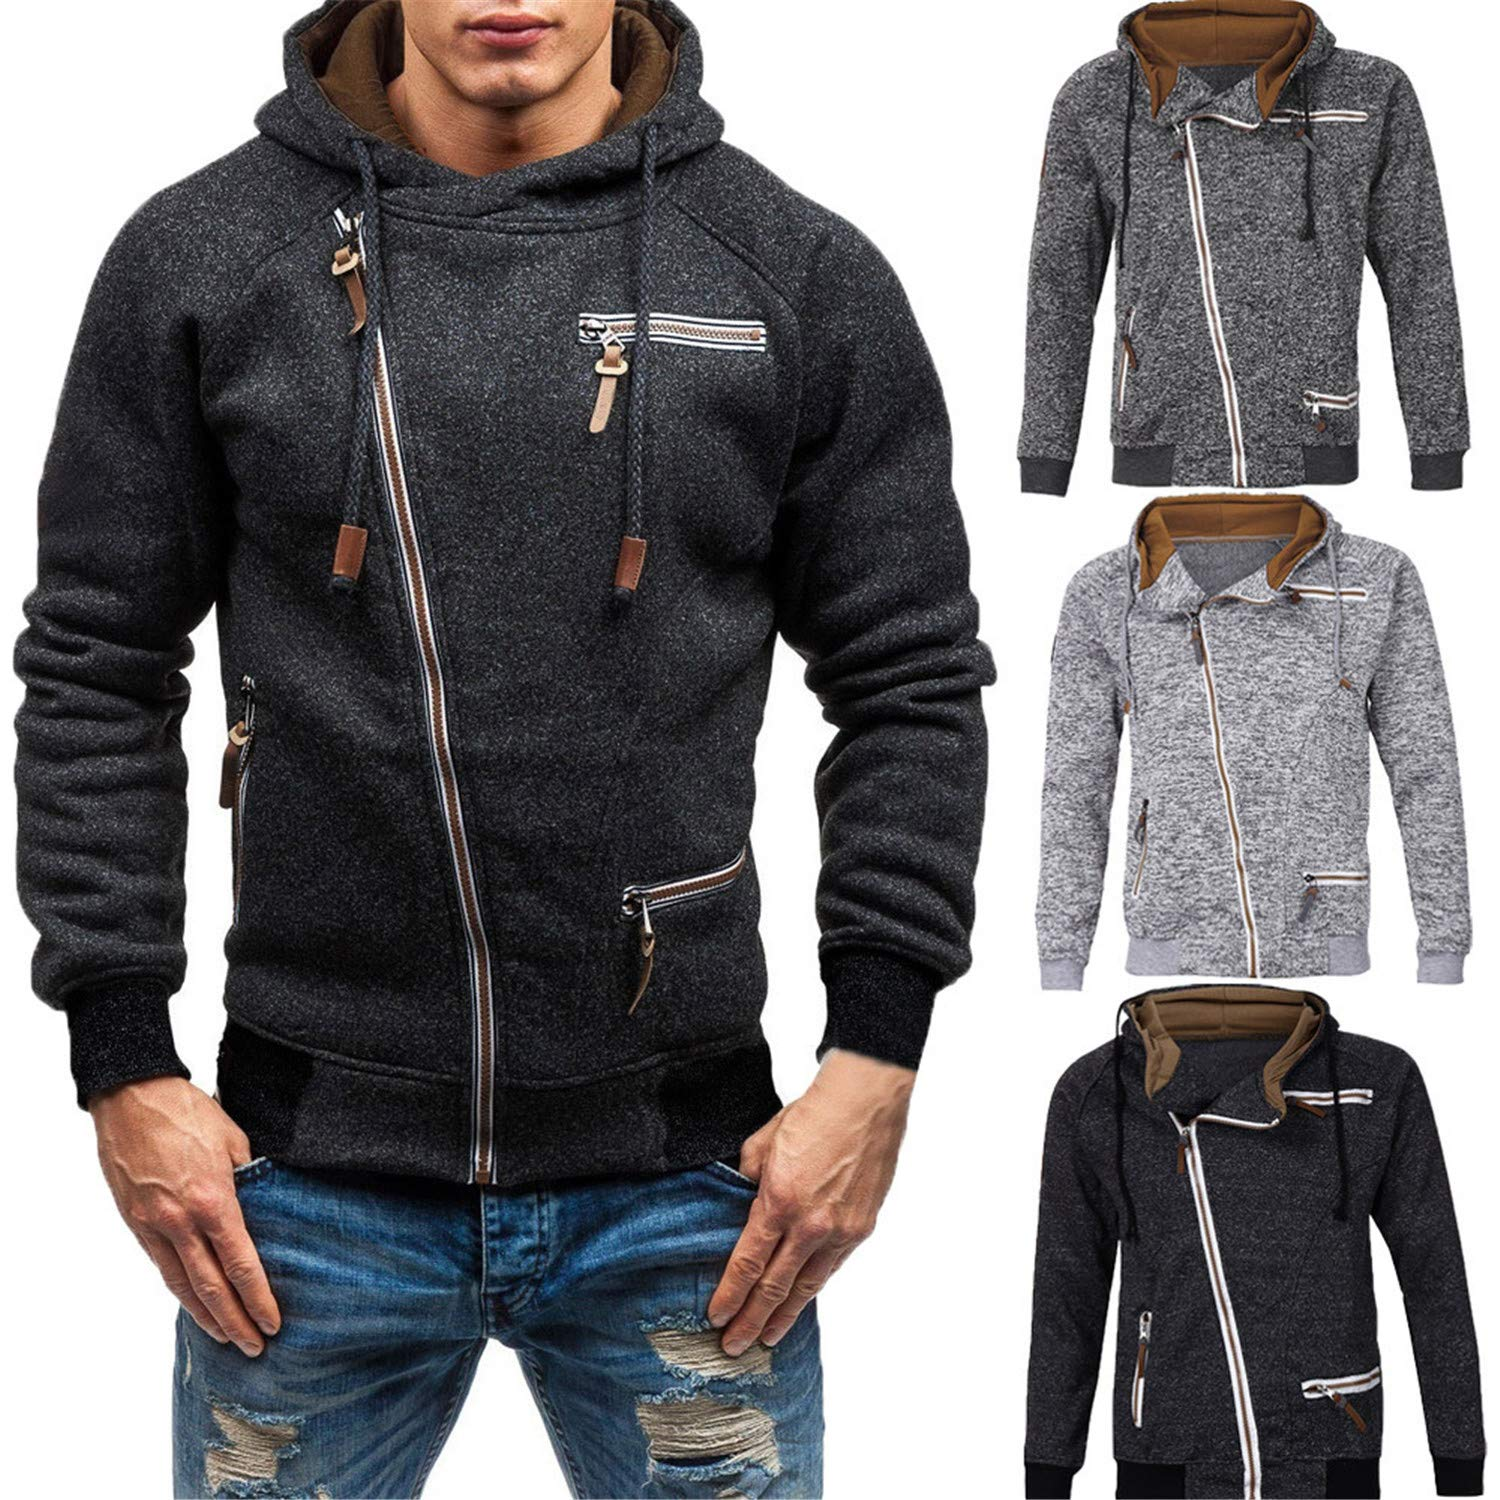 Amazon.com: Nelliewins Jacket Men Autumn Long Sleeve Zipper ...